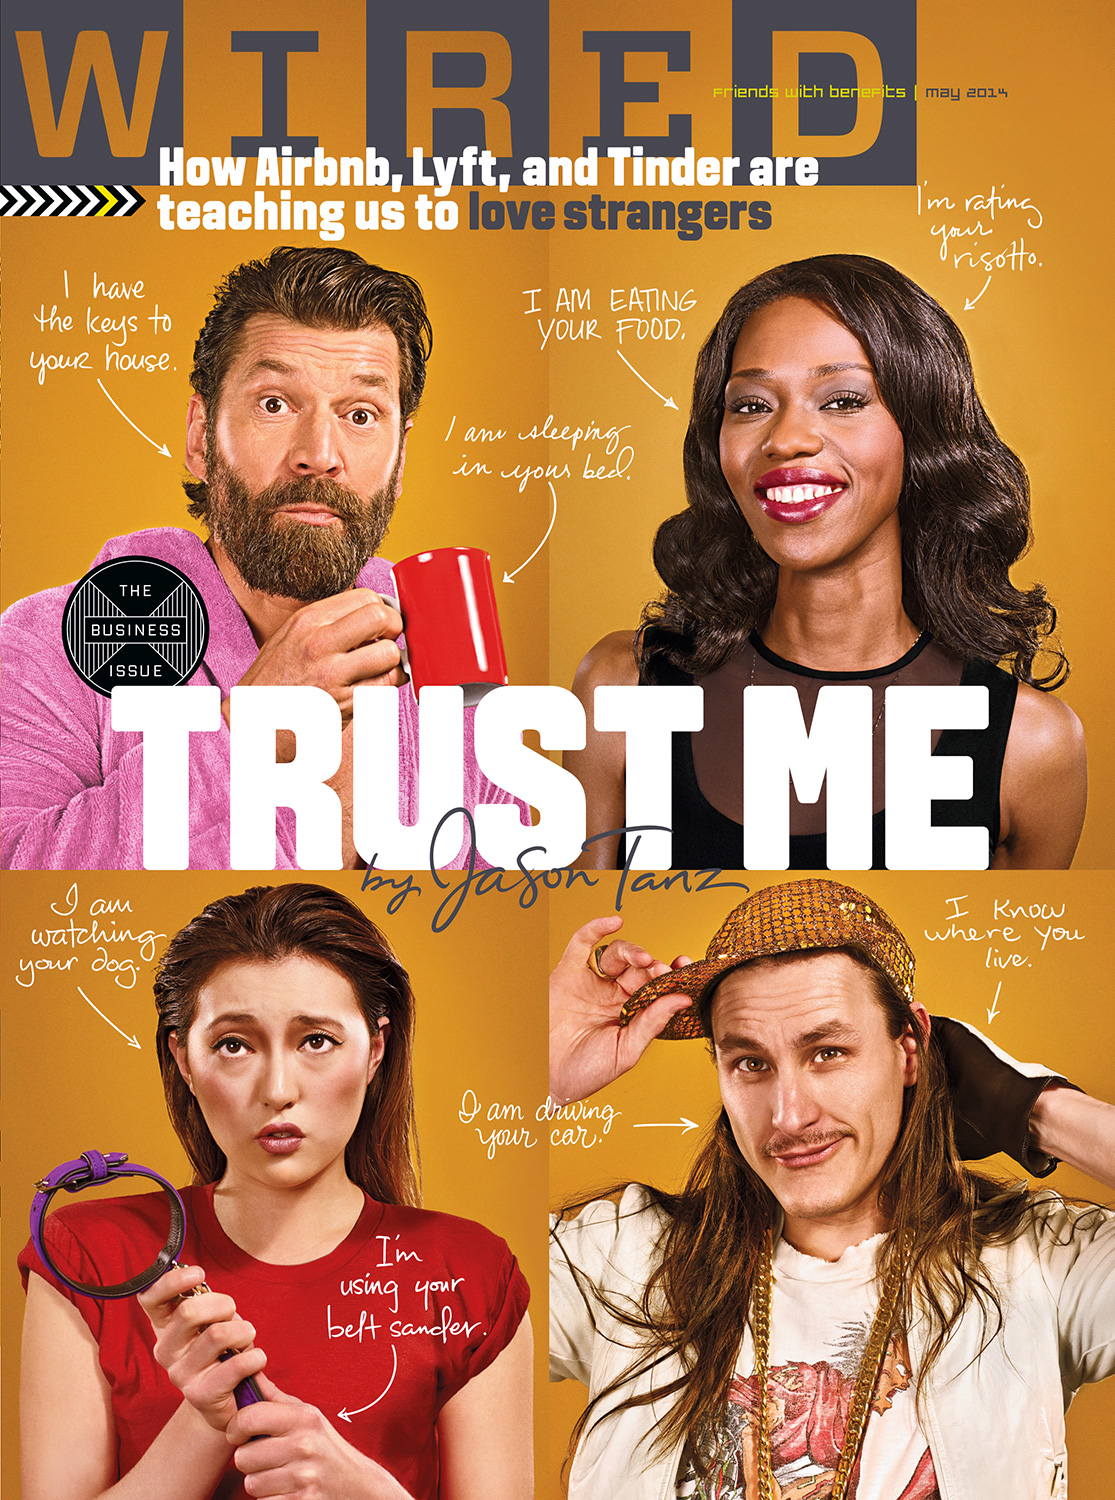 wired_trust_cover.jpg